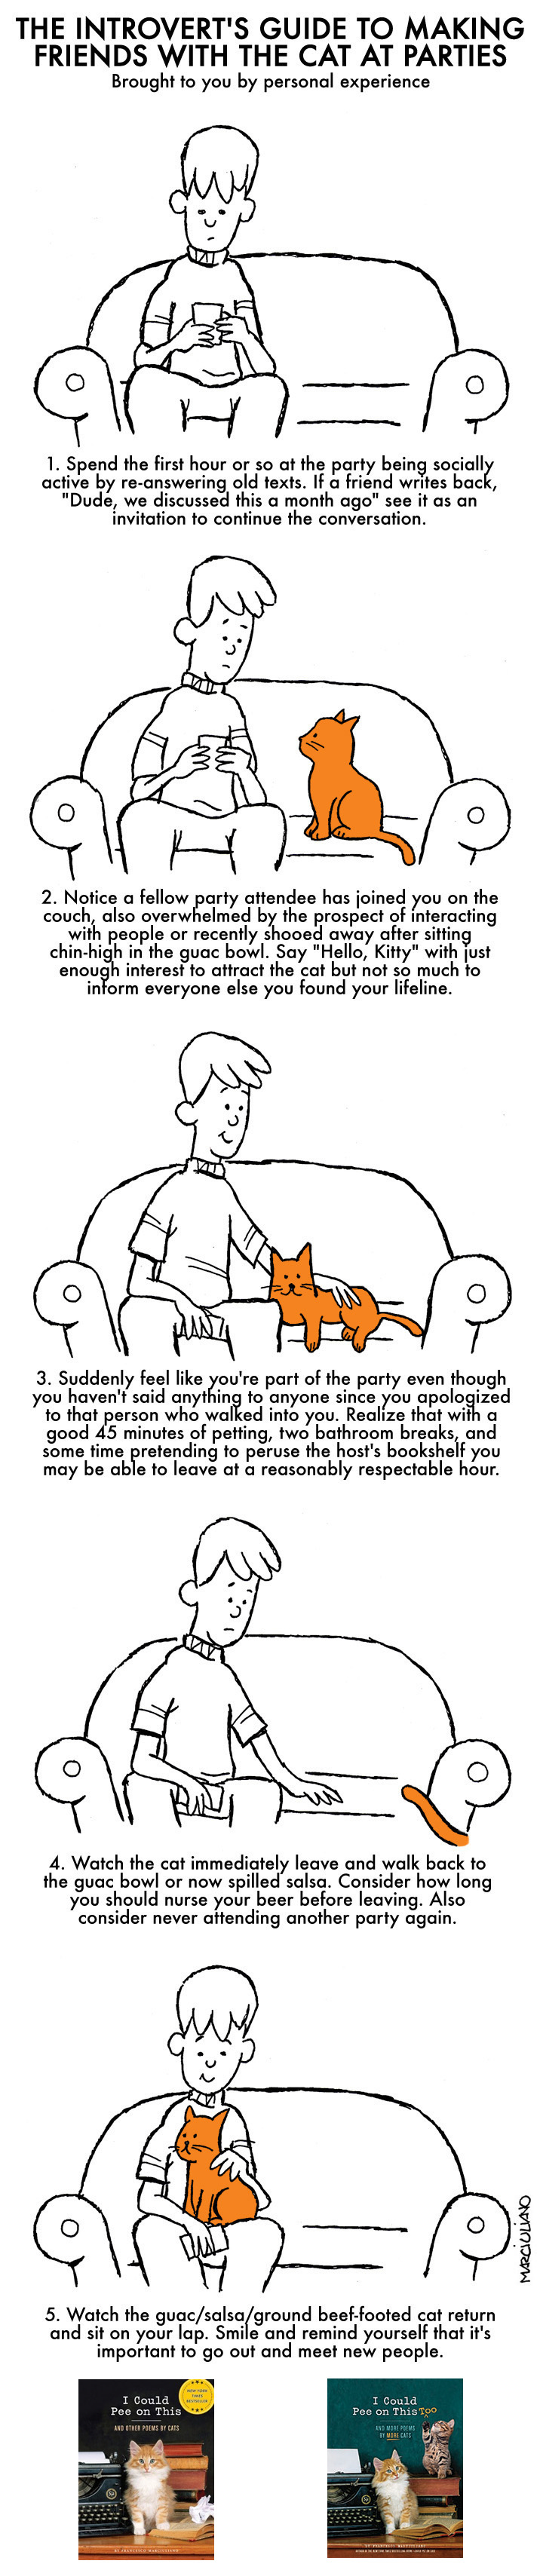 introverts-guide-to-cats-2016a